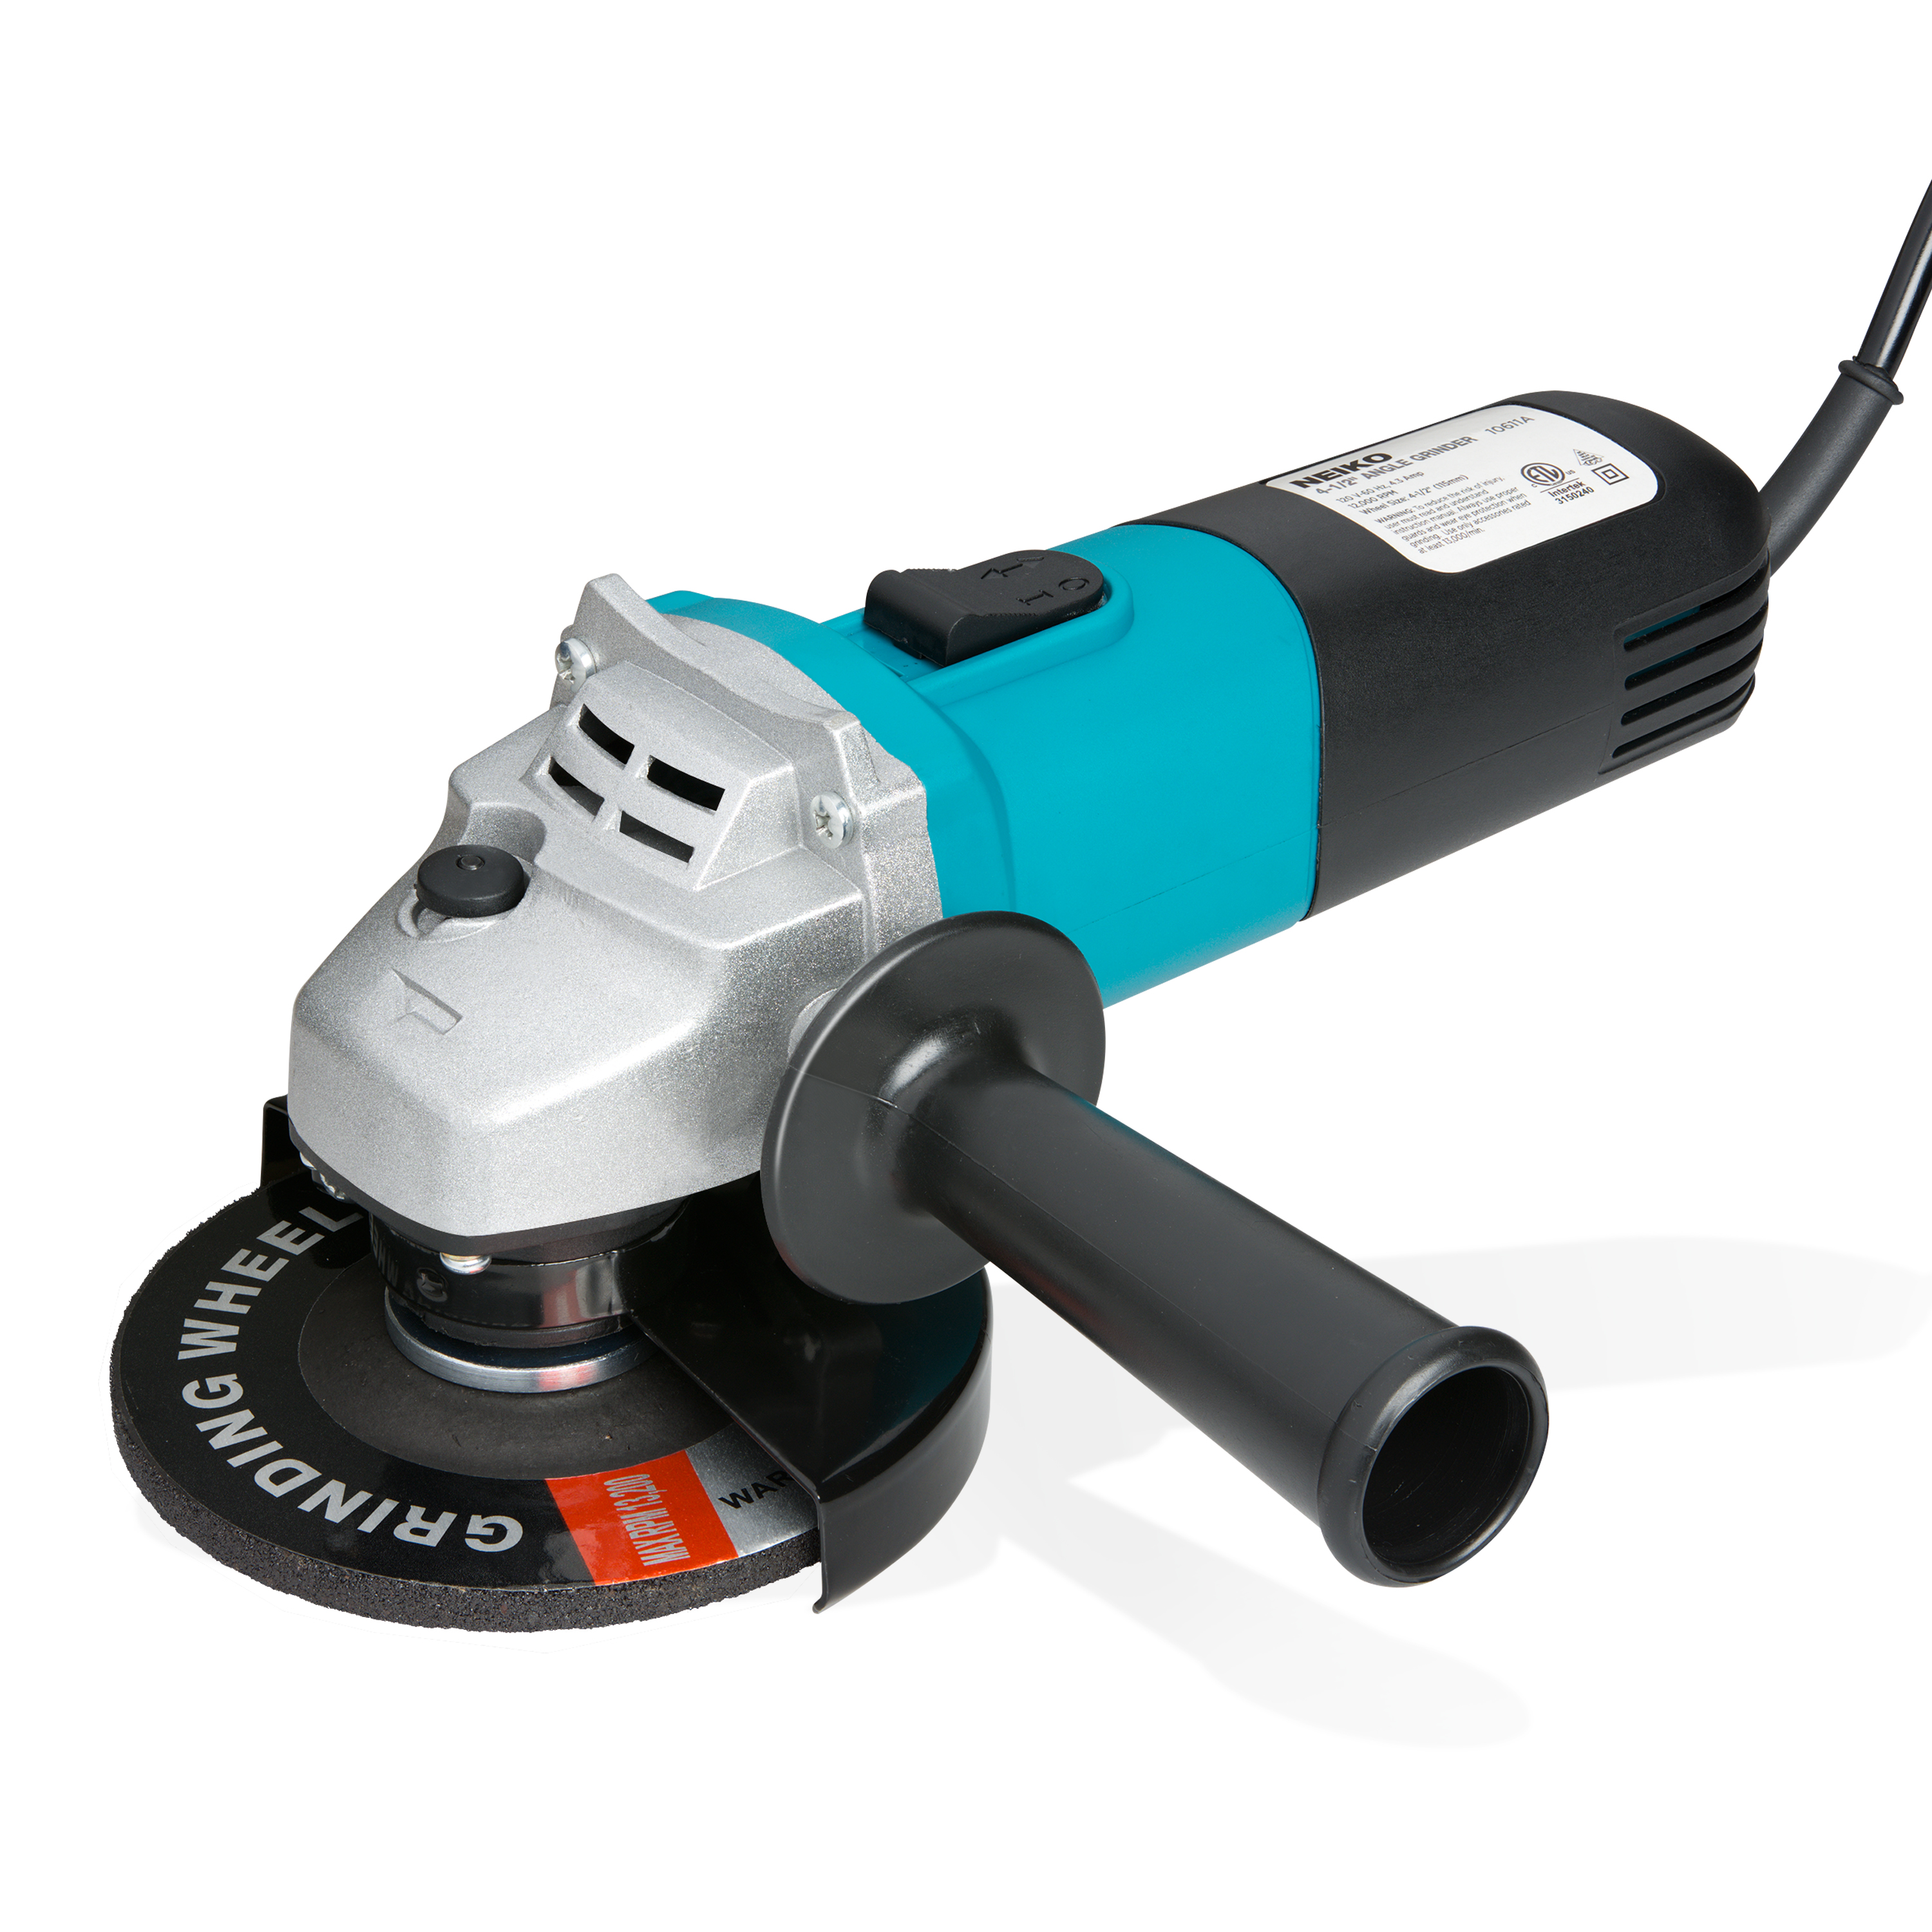 Difference Between Angle Grinder And Cut Off Tool